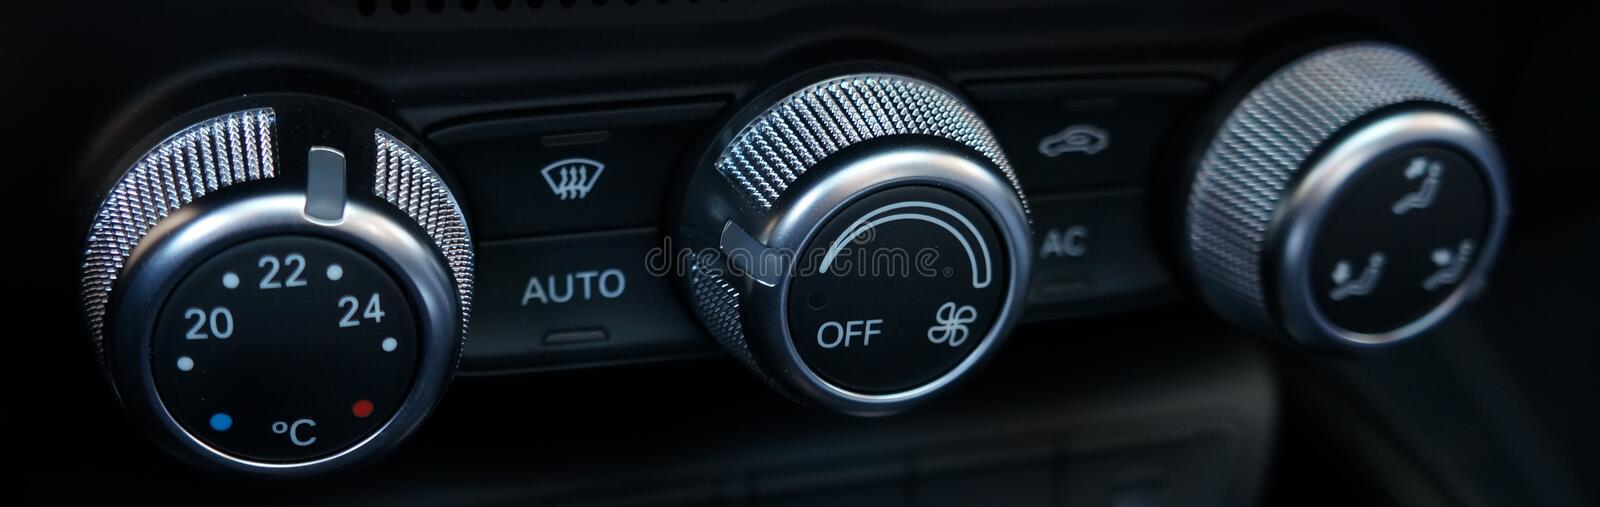 Car air conditioning controls stock image